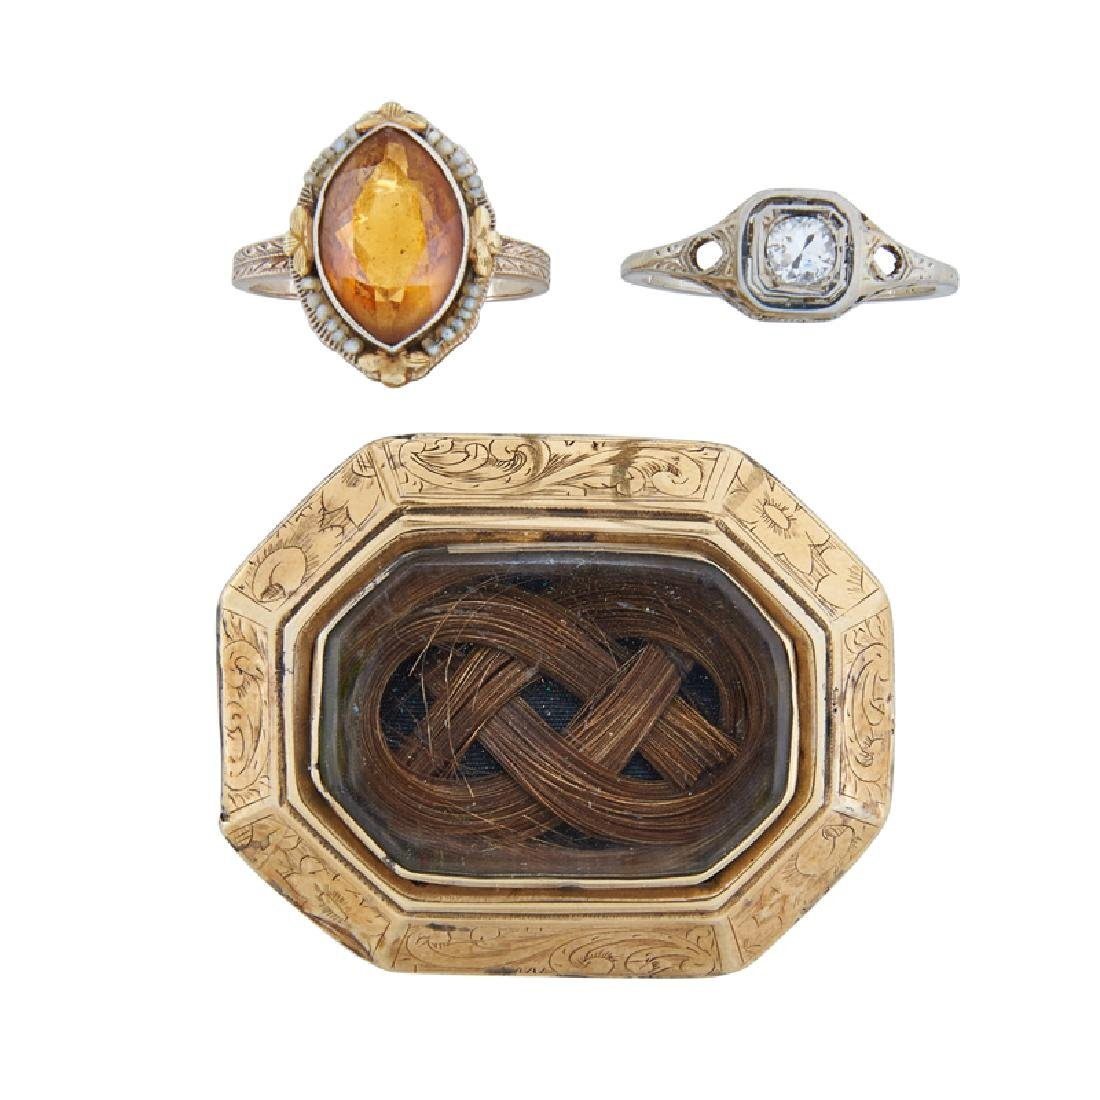 VICTORIAN OR EDWARDIAN GOLD BROOCH & RINGS